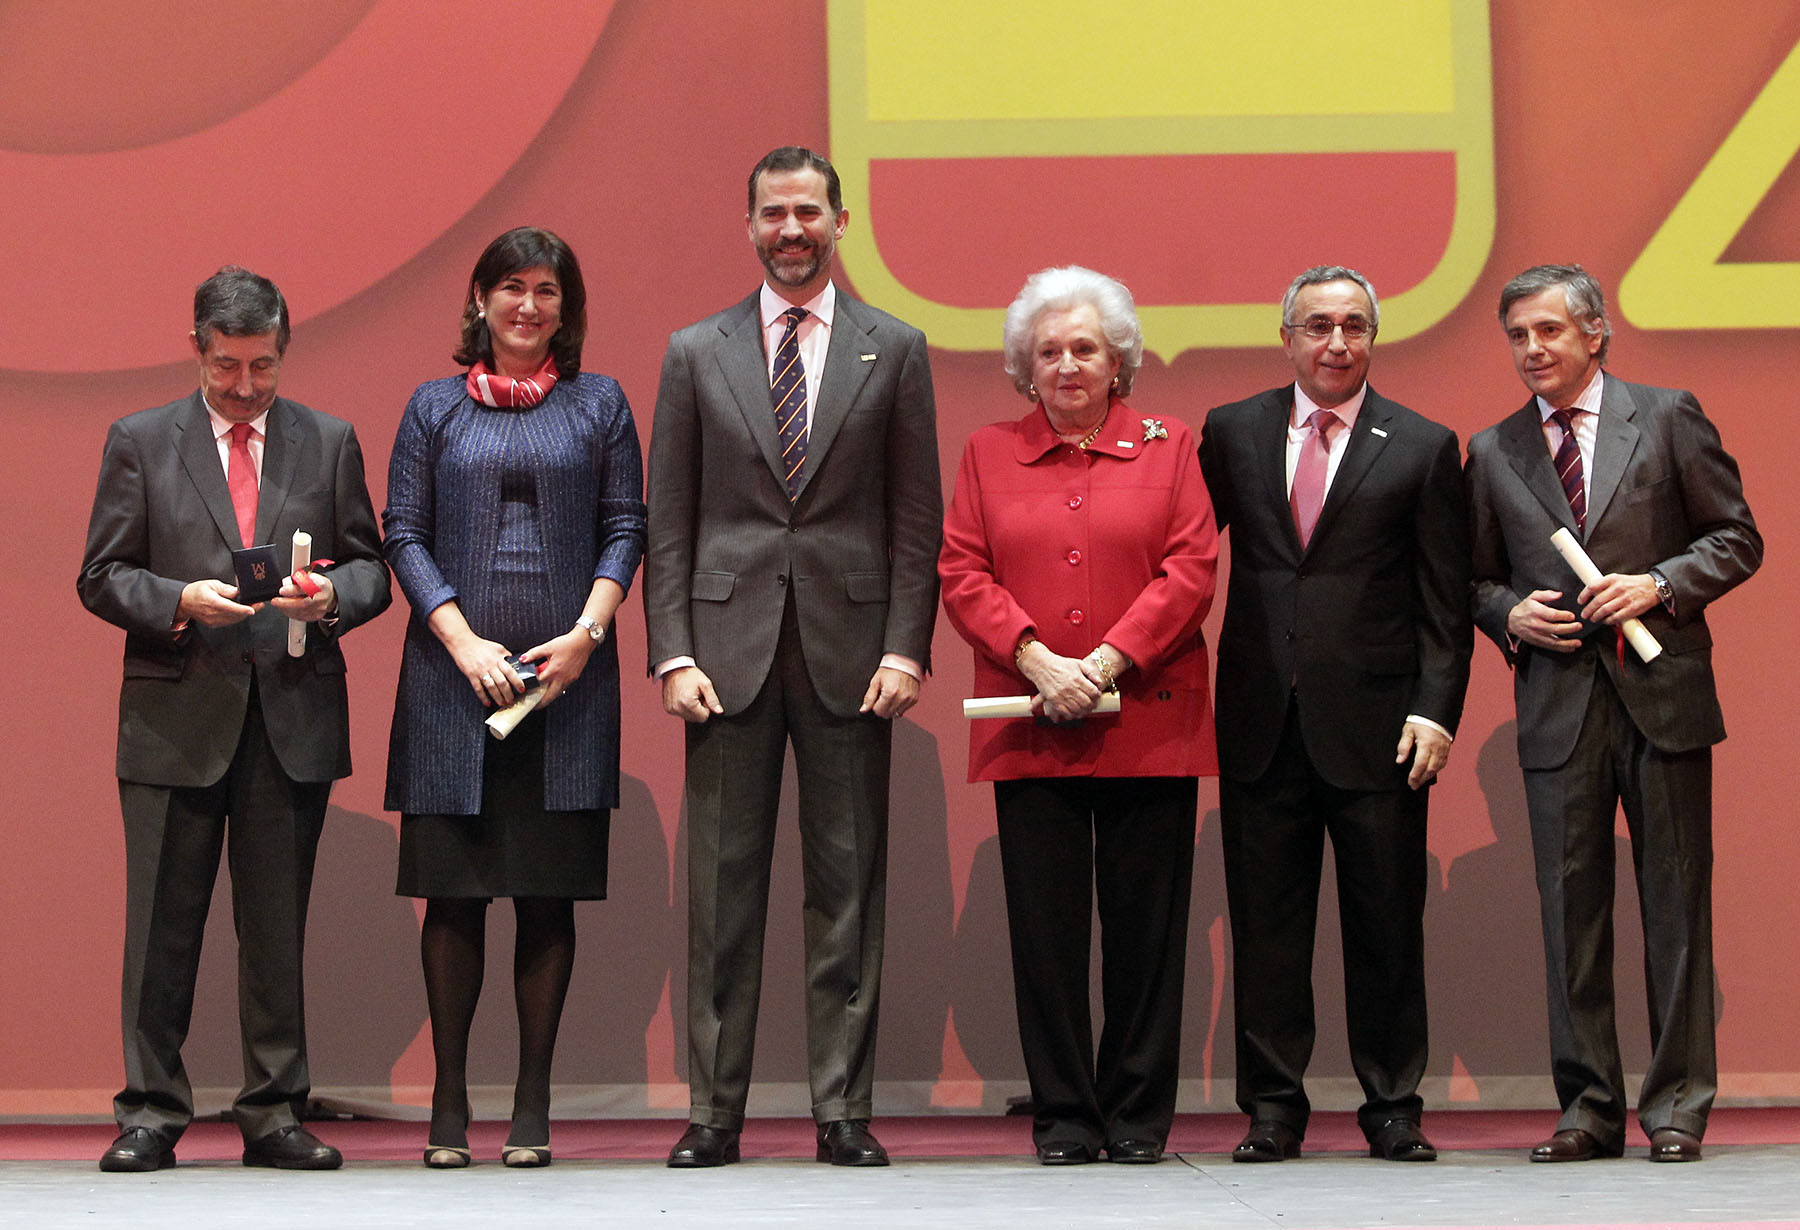 Spanish Olympic Committee centenary celebration Madrid December 12 2012